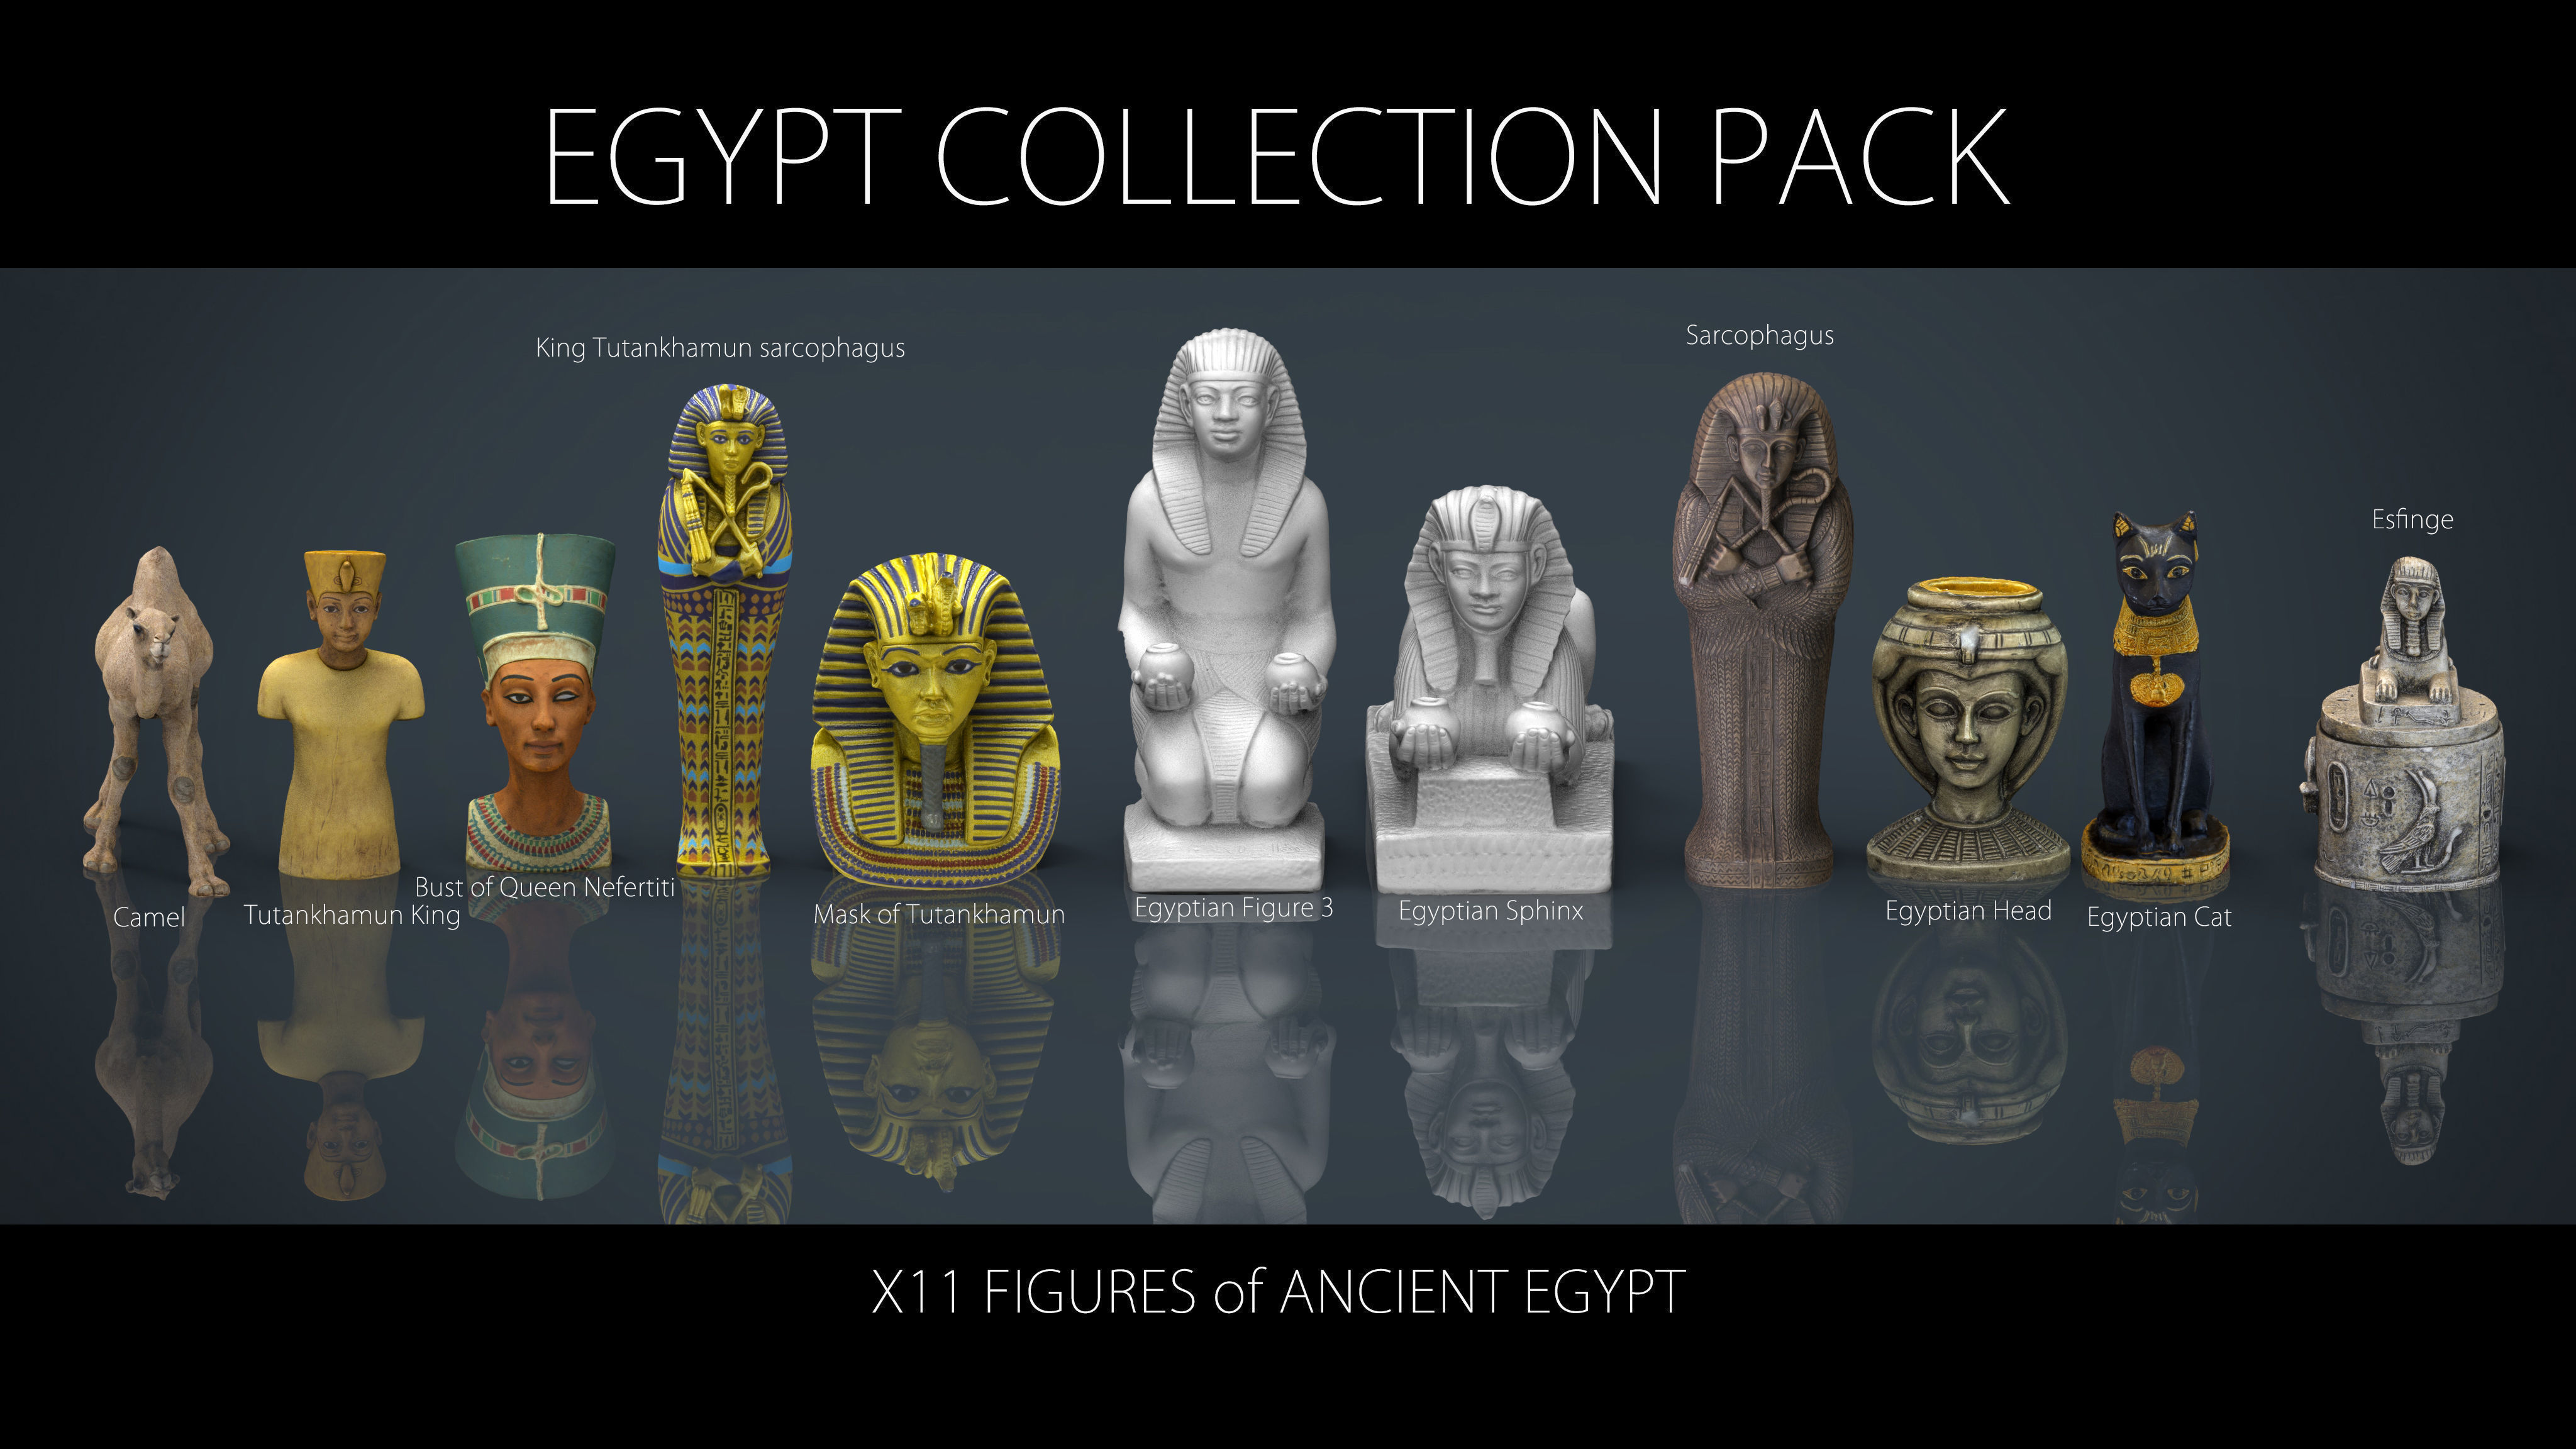 EGYPT COLLECTION PACK